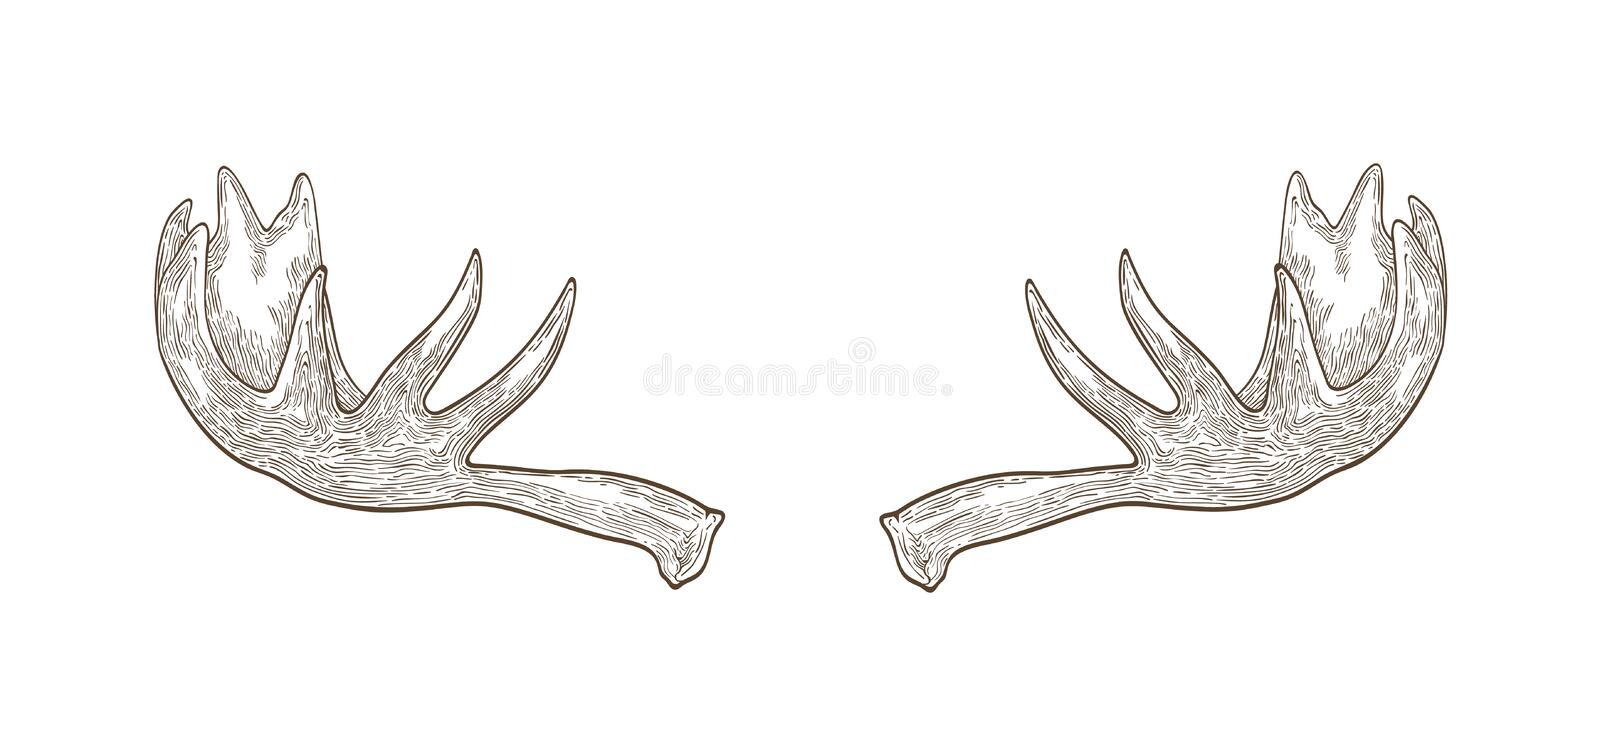 Decorative drawing of elk or moose palmate antlers. Trophy or haul hand drawn with contour lines on white background. Monochrome vector illustration in elegant vector illustration